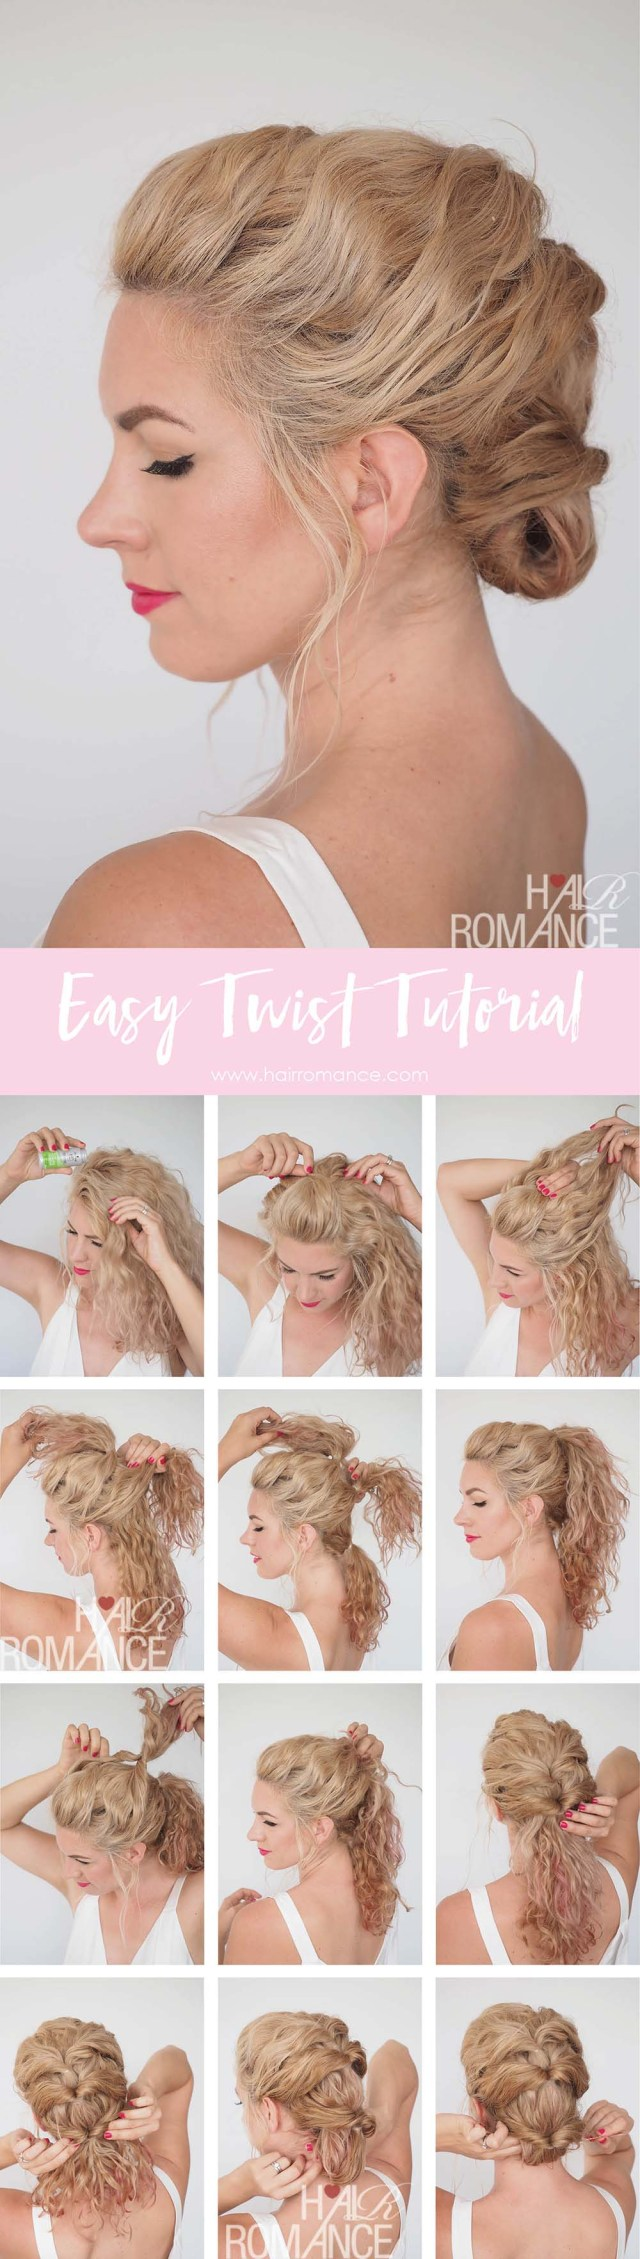 quick and easy twist hairstyle tutorial – get great hair